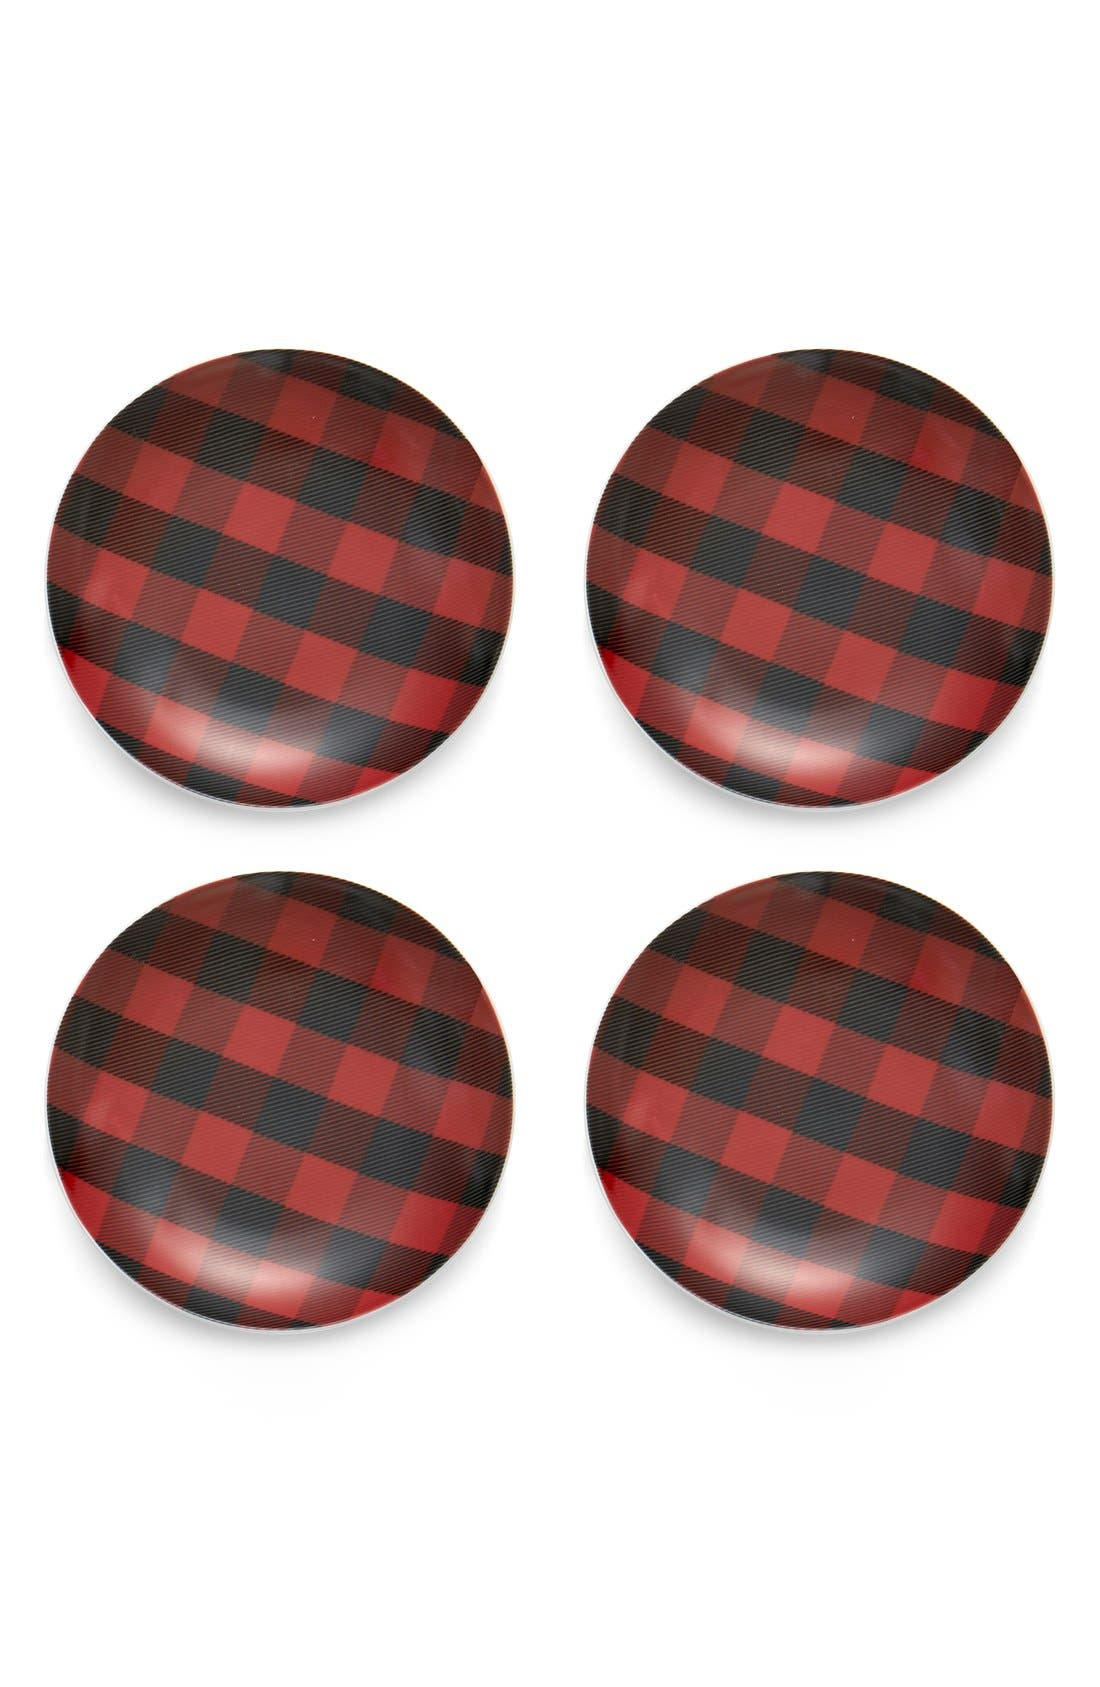 PRIMA DESIGN,                             Buffalo Check Porcelain Appetizer Plates,                             Main thumbnail 1, color,                             601